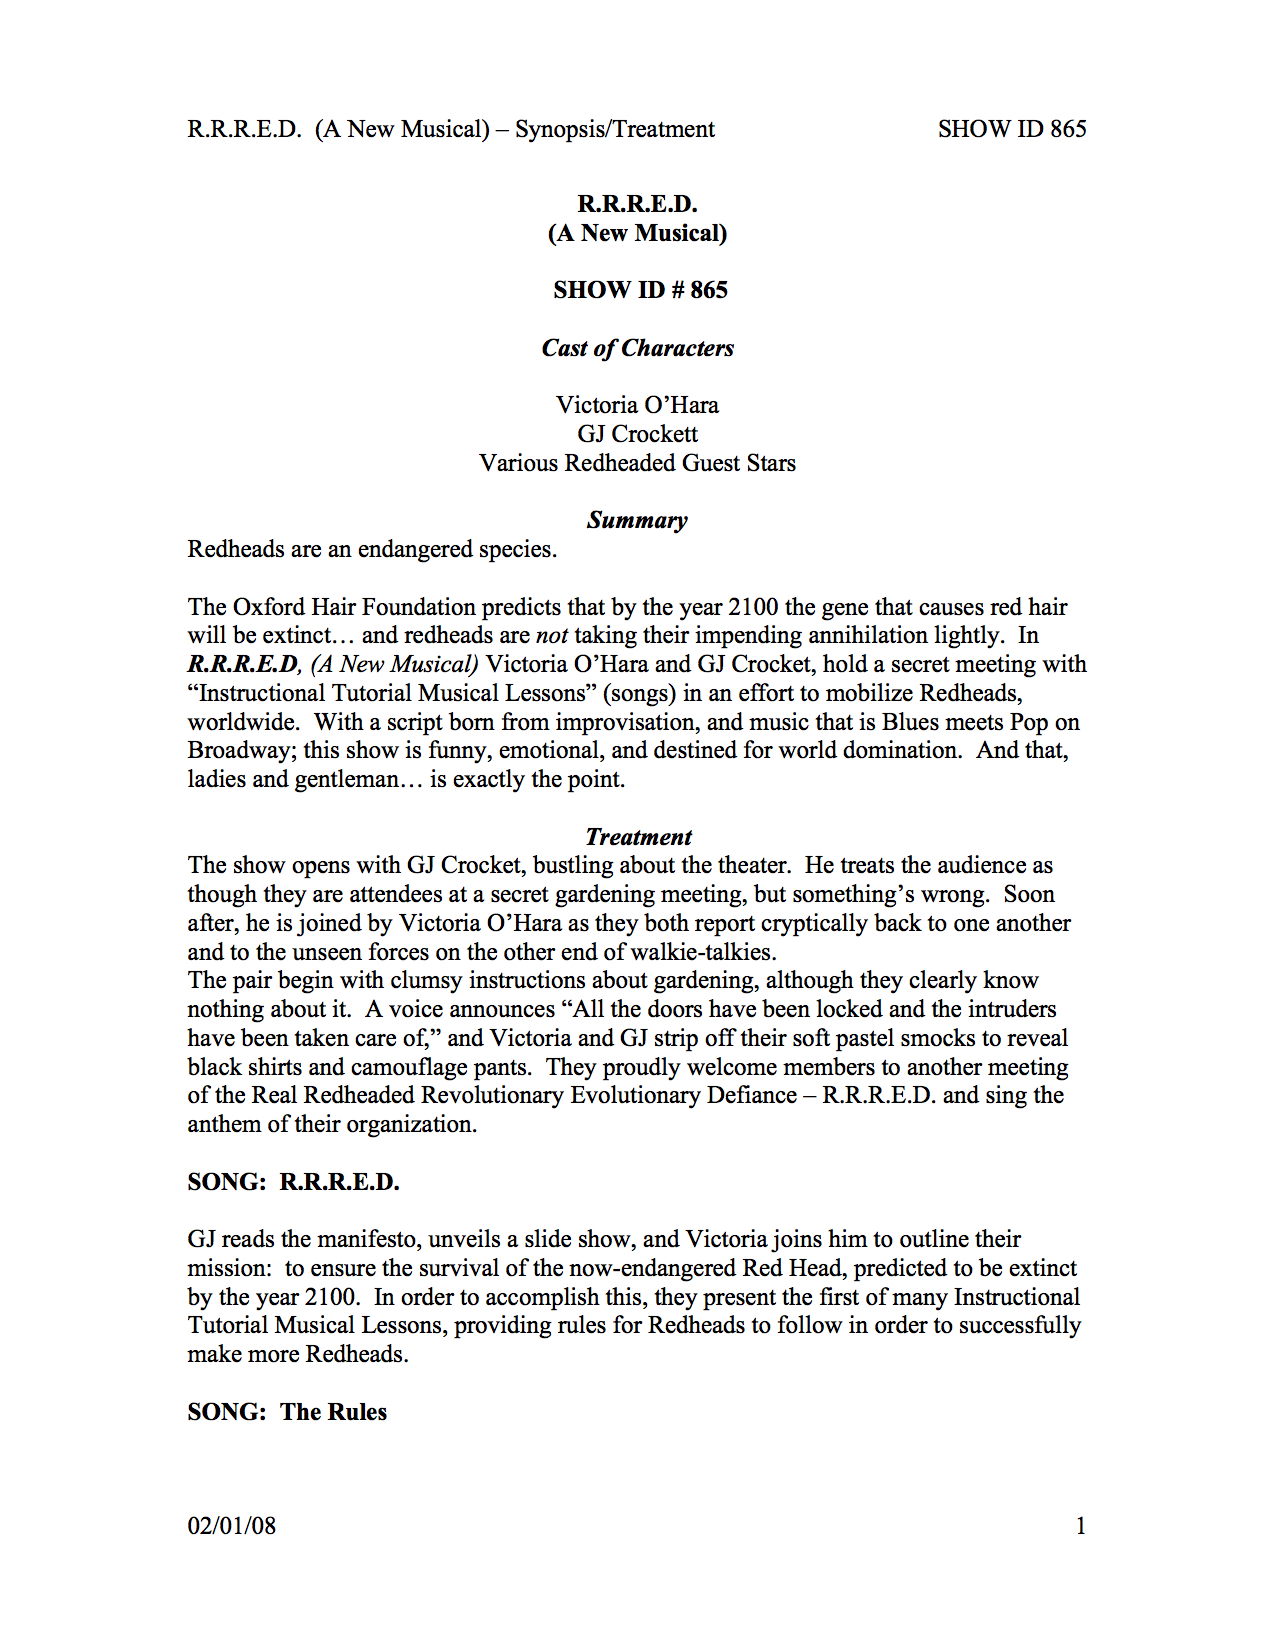 RRRED Synopsis for NYMF page 1.jpg